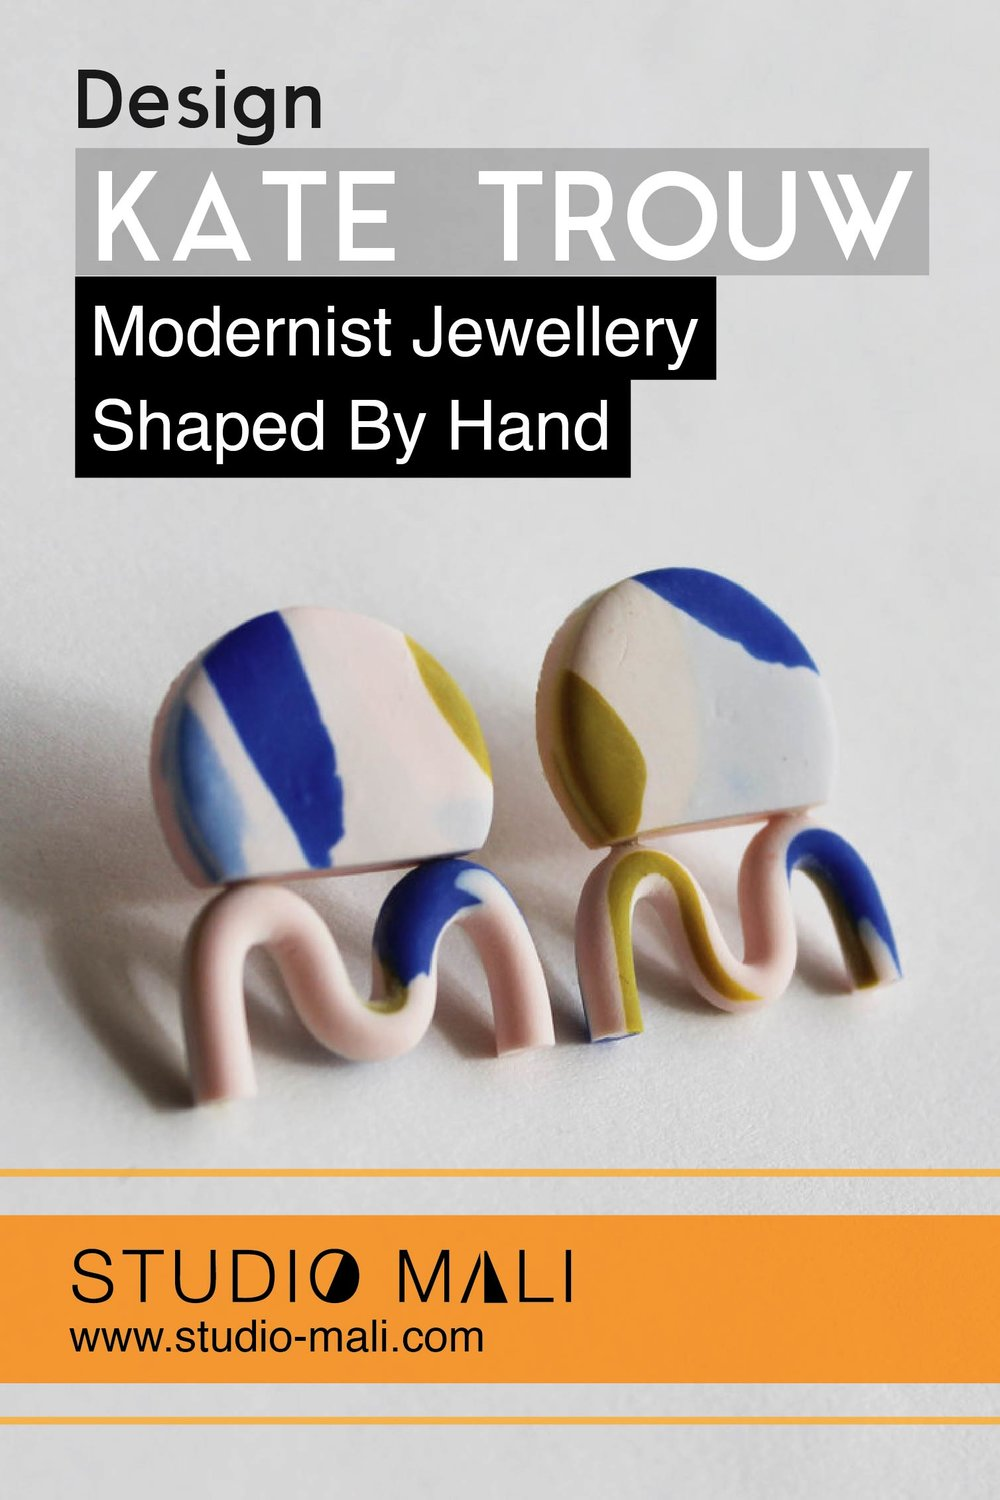 Kate Trouw - Modernist Jewellery Shaped By Hand